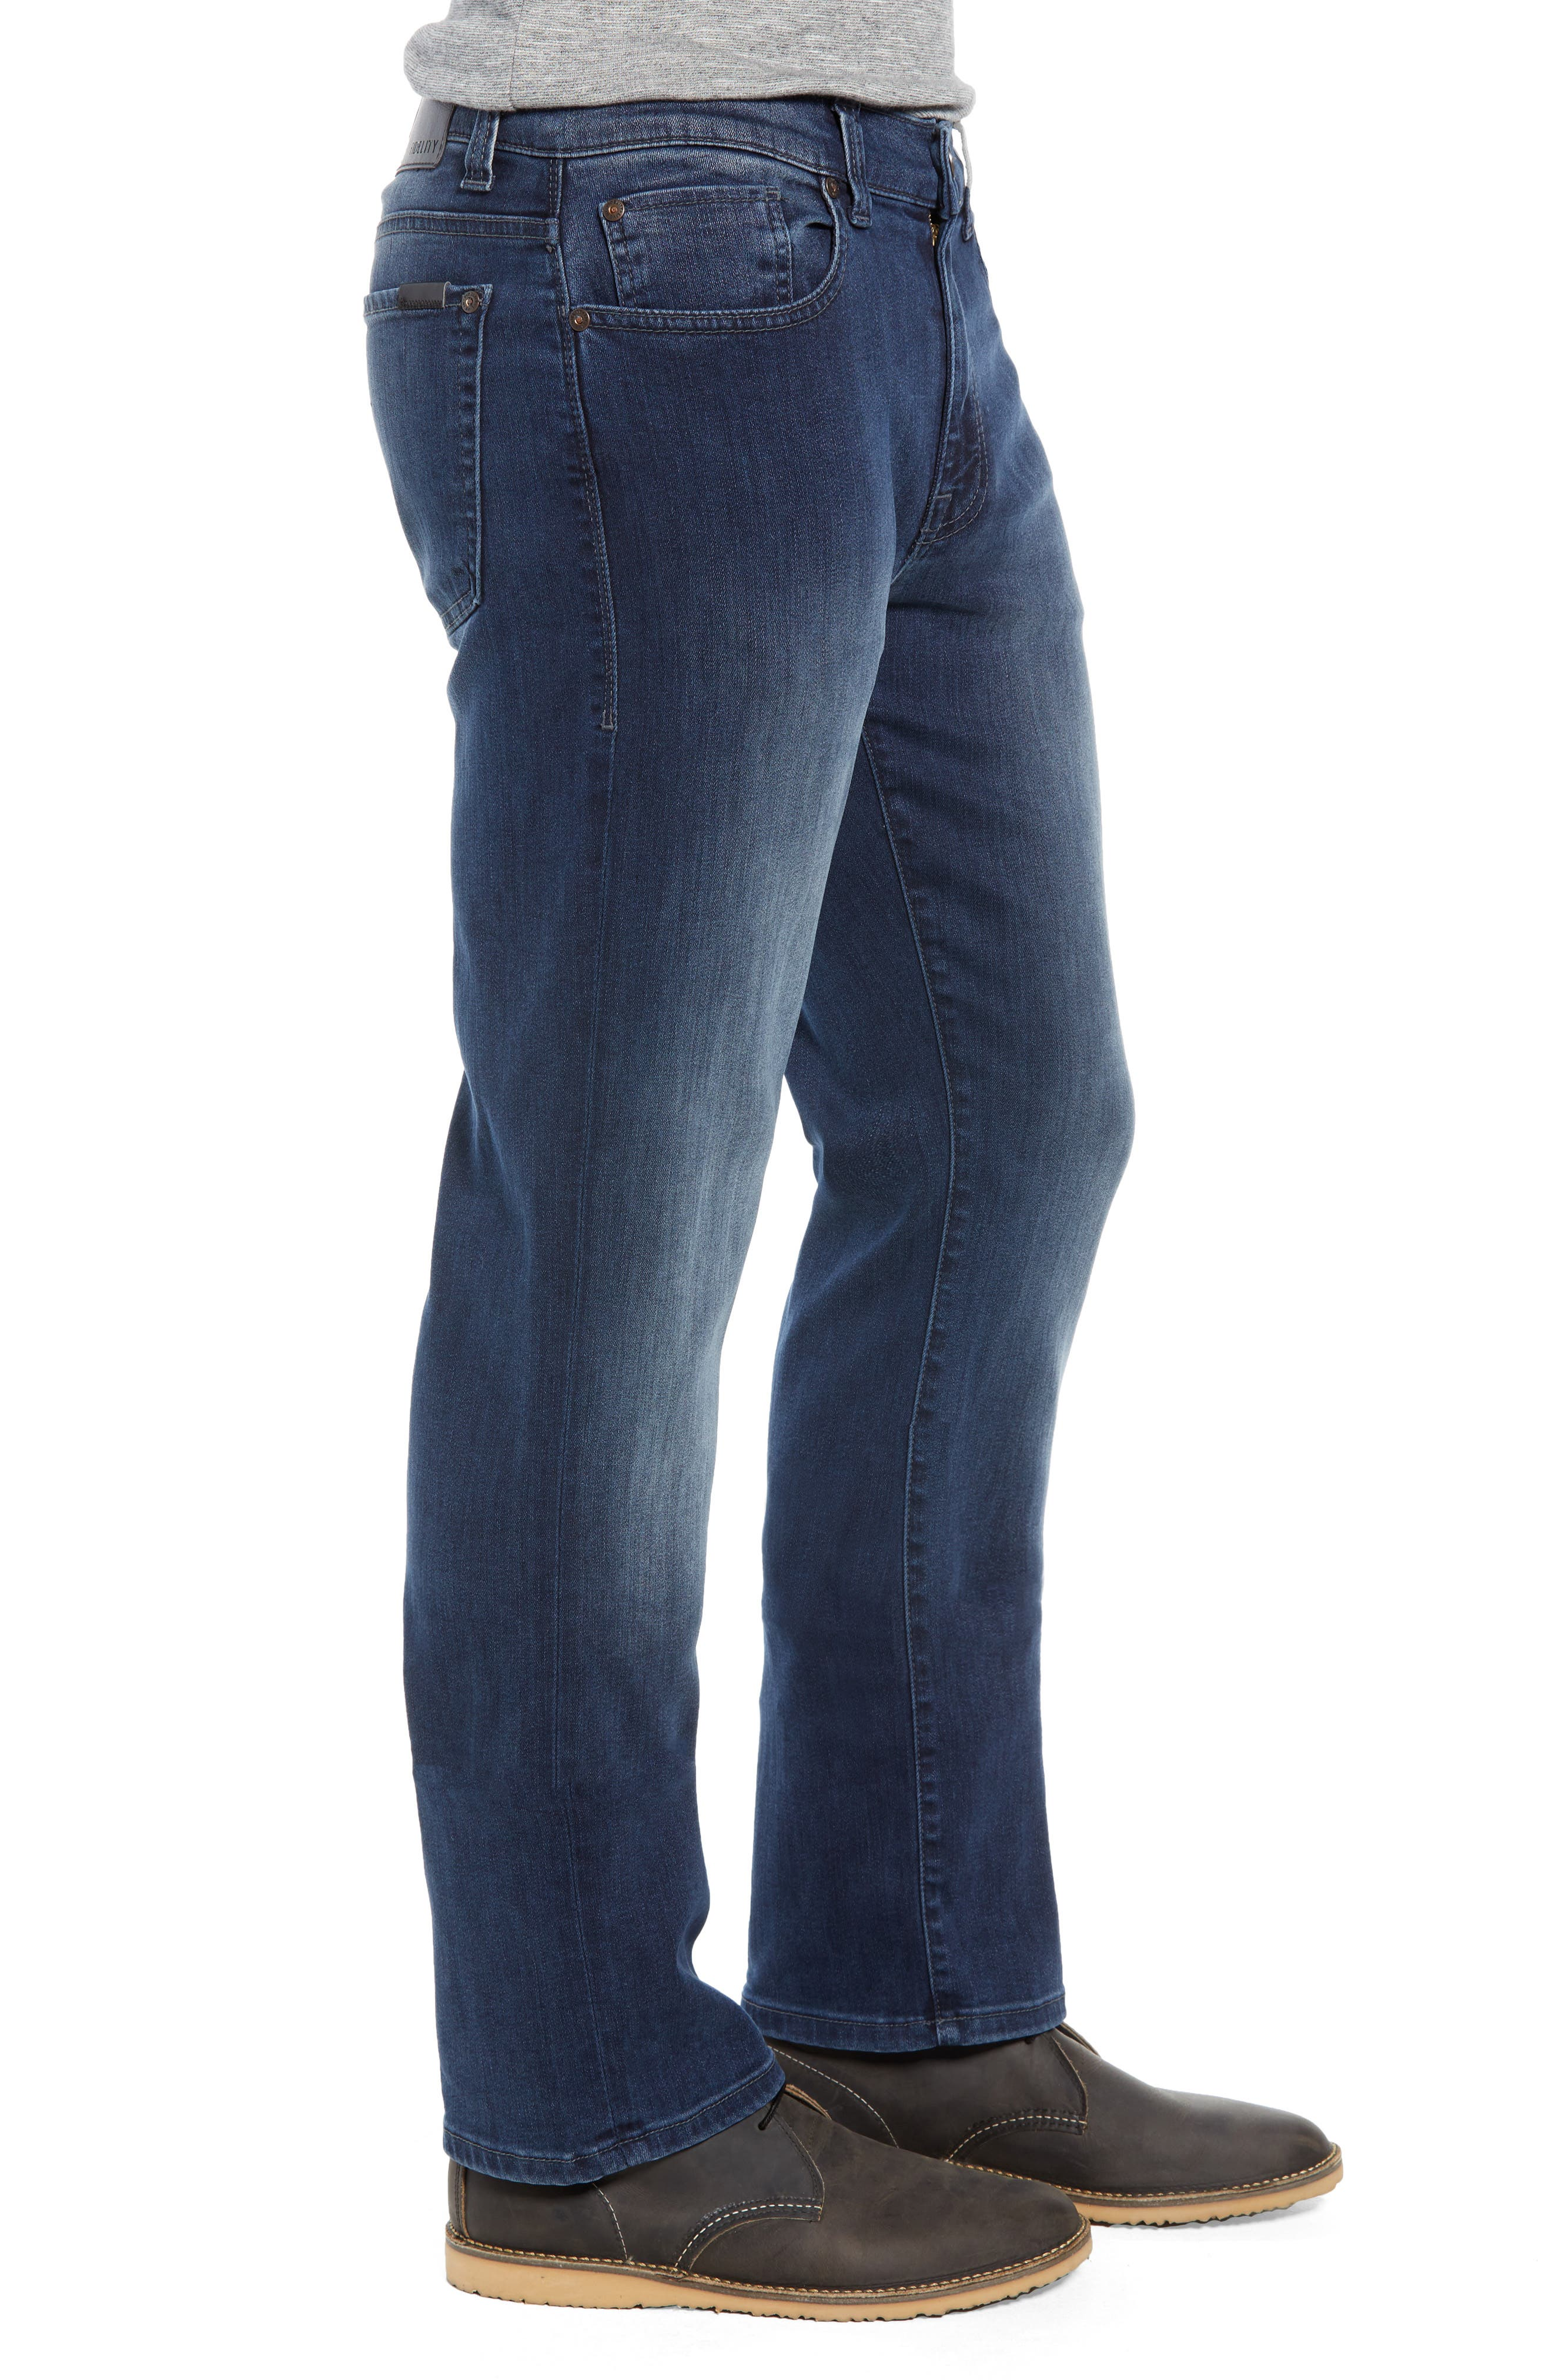 50-11 Relaxed Fit Jeans,                             Alternate thumbnail 3, color,                             BEL AIR BLUE